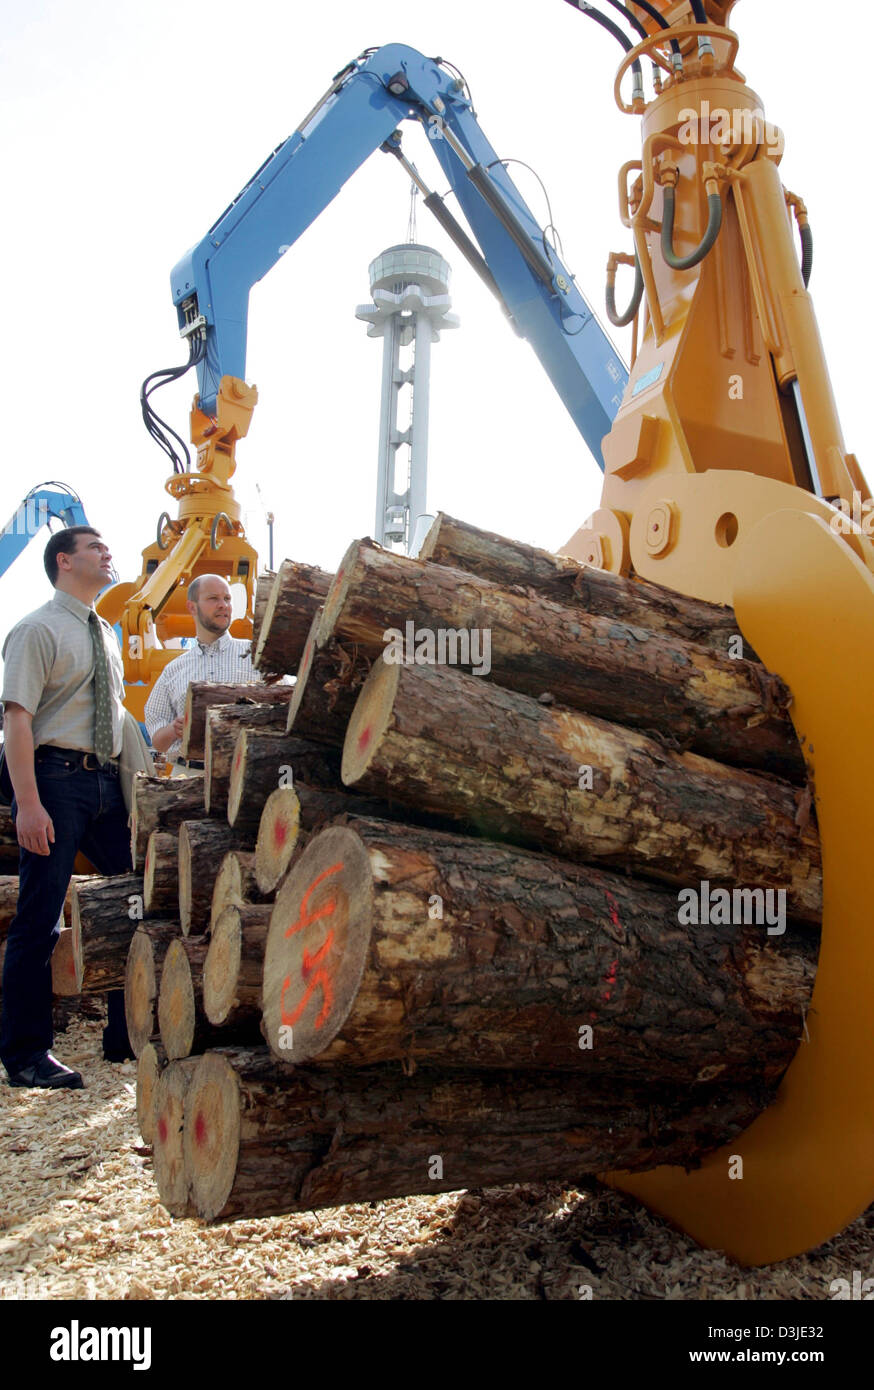 Two men watch an orange machine carrying a bulk of logs at the premiere of the world forest and wood product fair - Stock Image